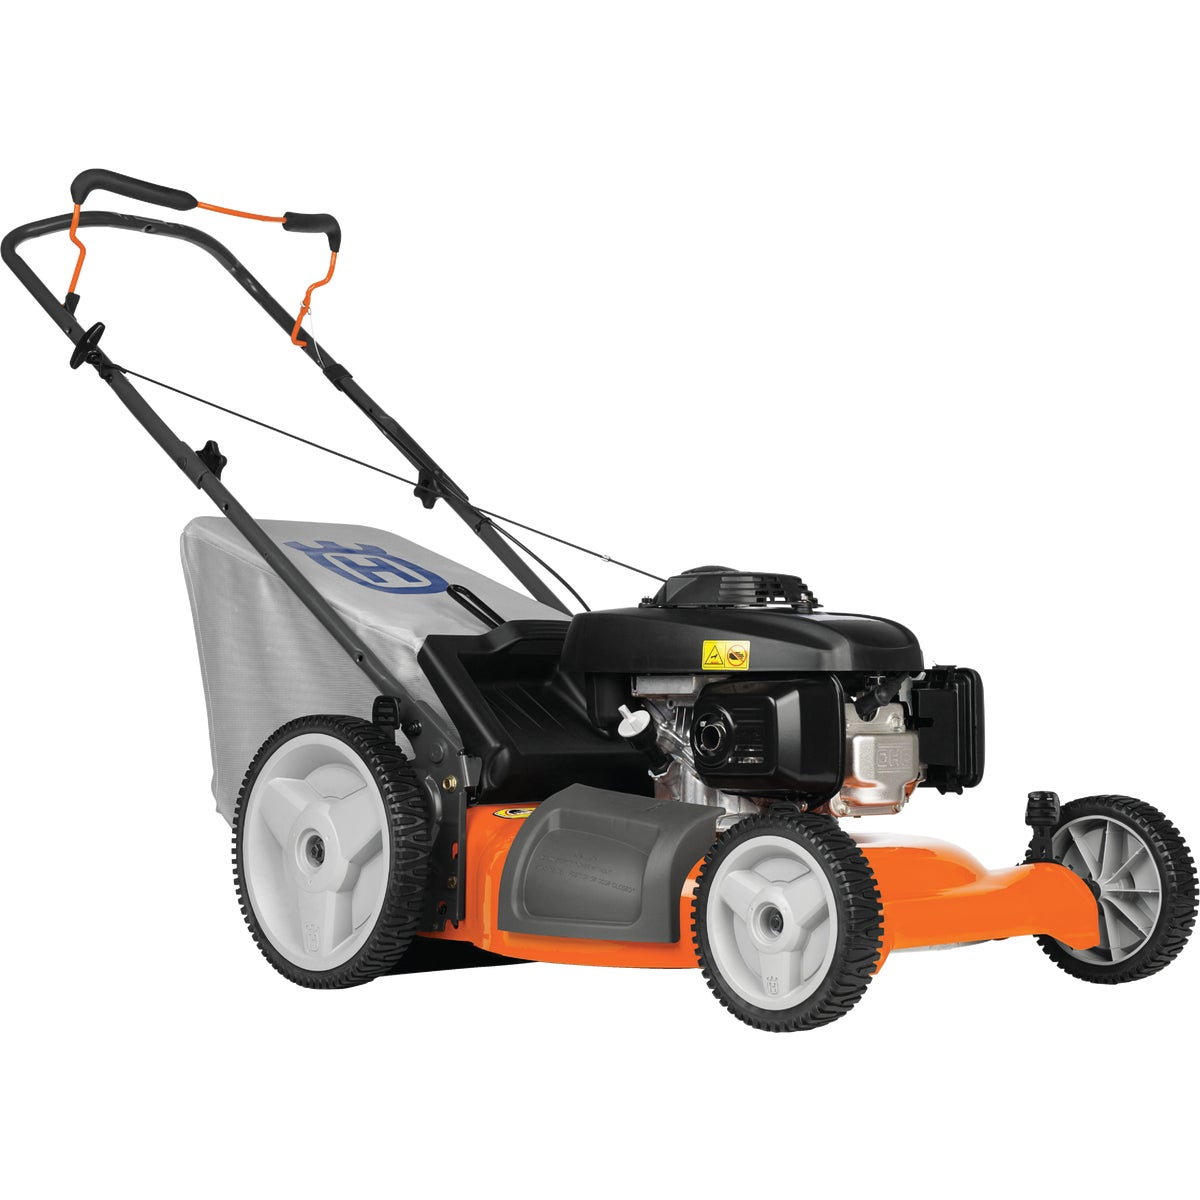 "21"" 3-1 PUSH MOWER - 961330019 by Husqvarna Outdoor"